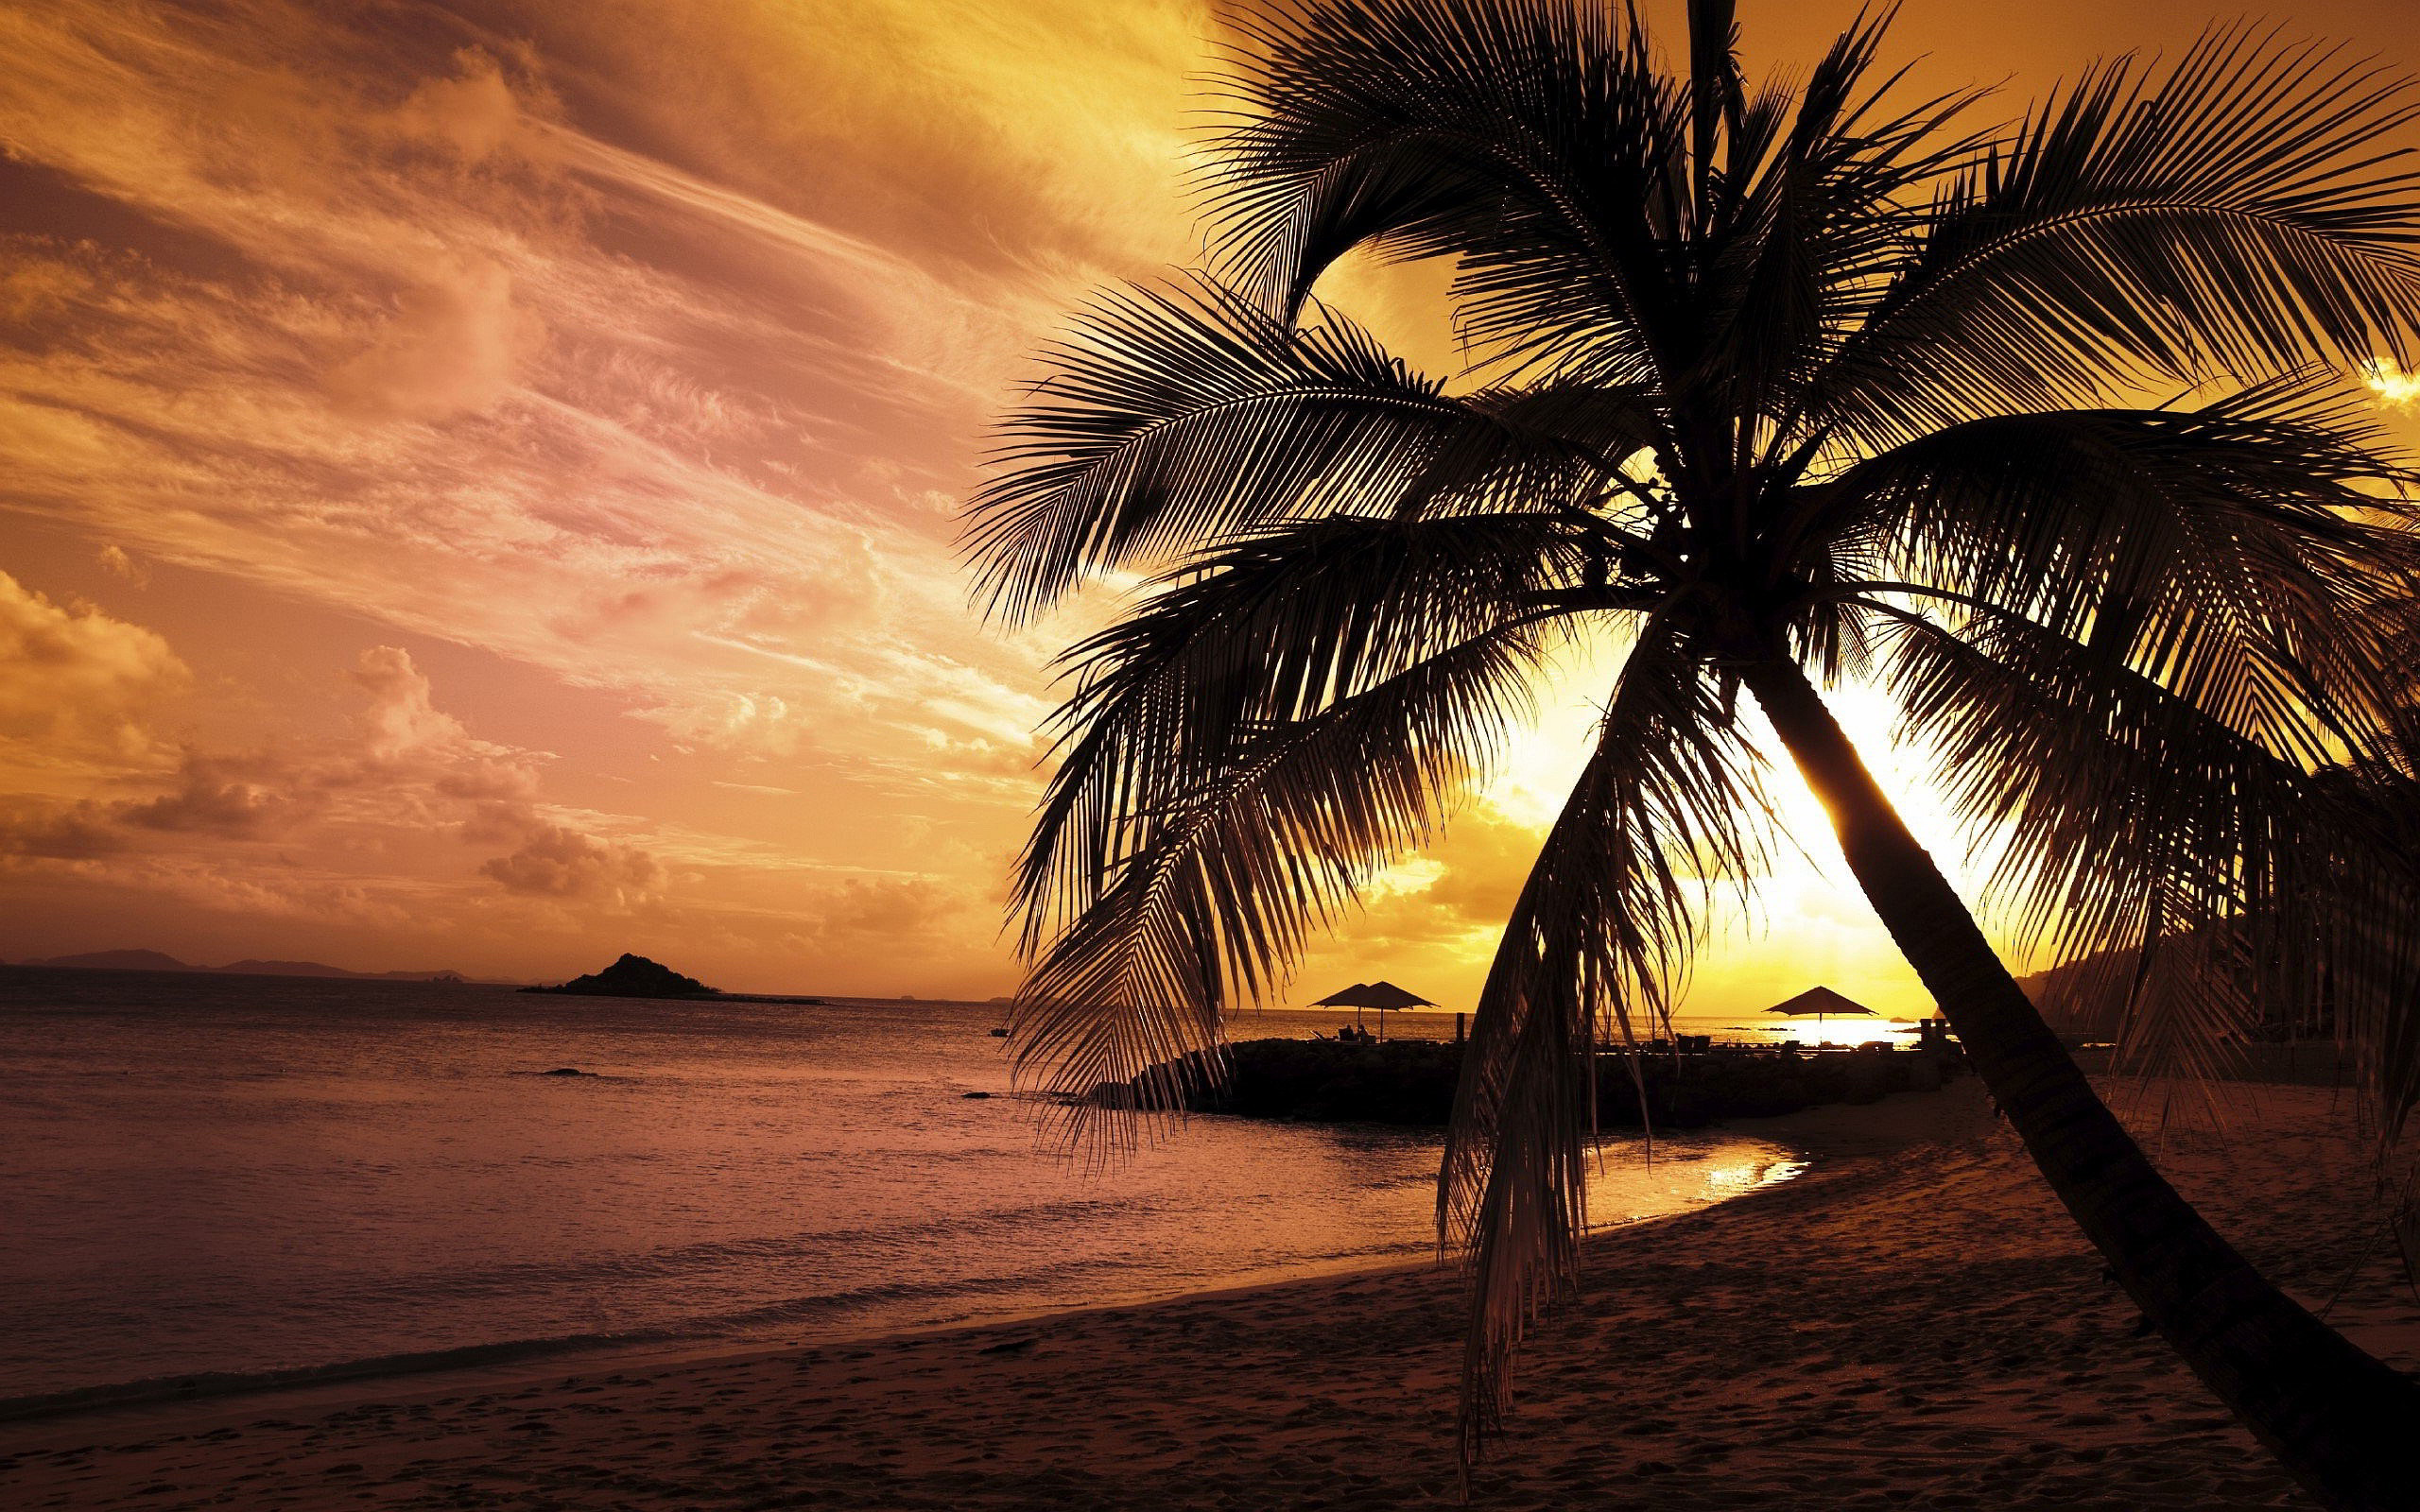 Sunset Beach Wallpaper 1080p HD